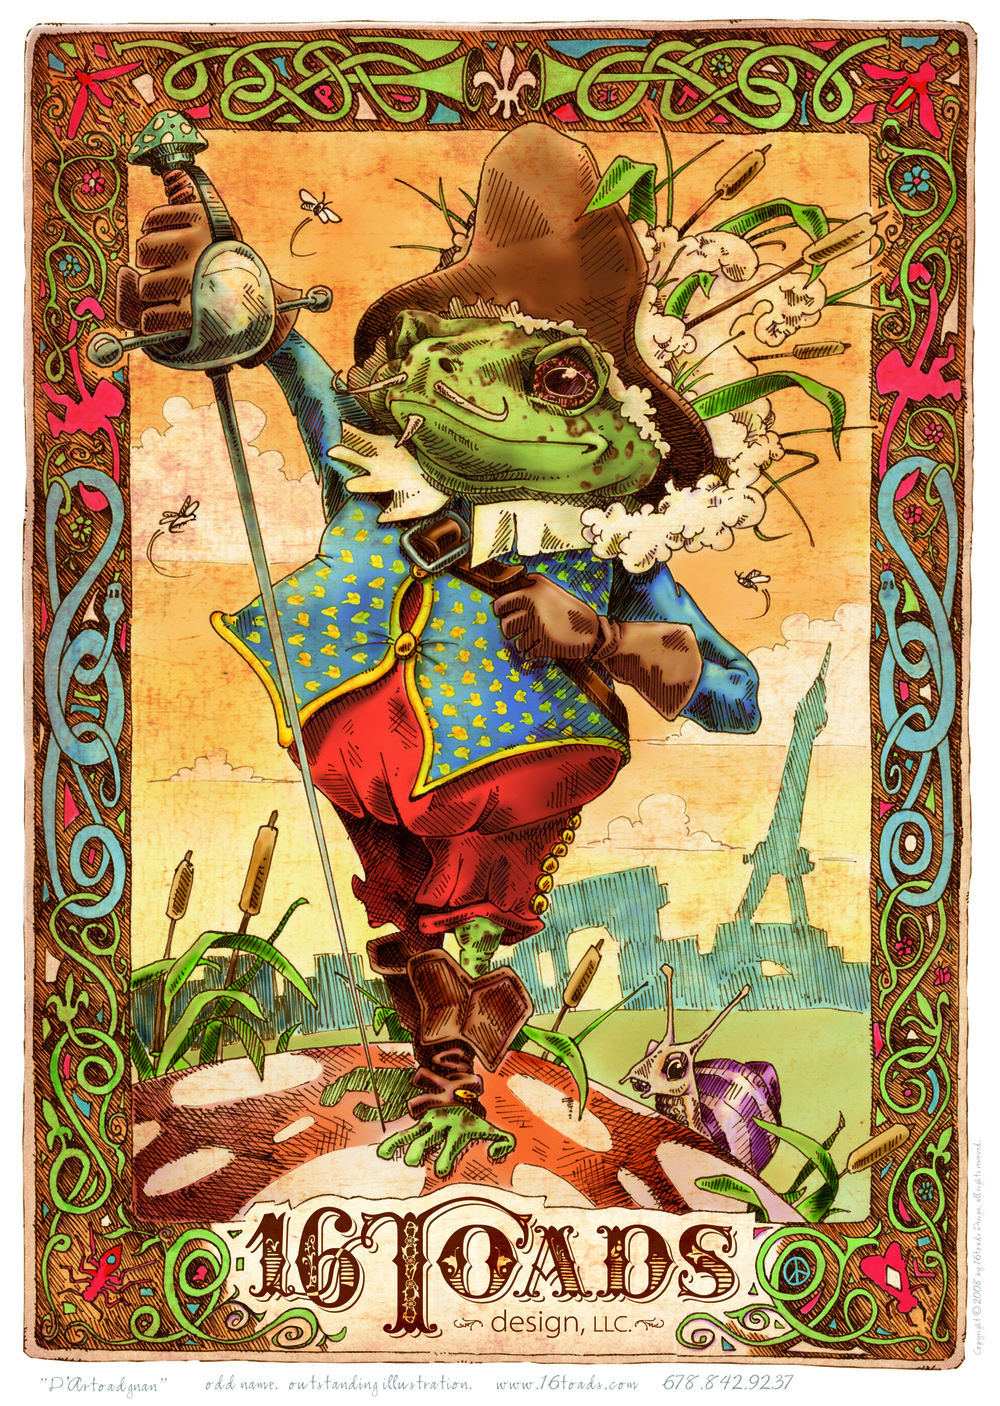 toad-musketeer-FINAL.jpg